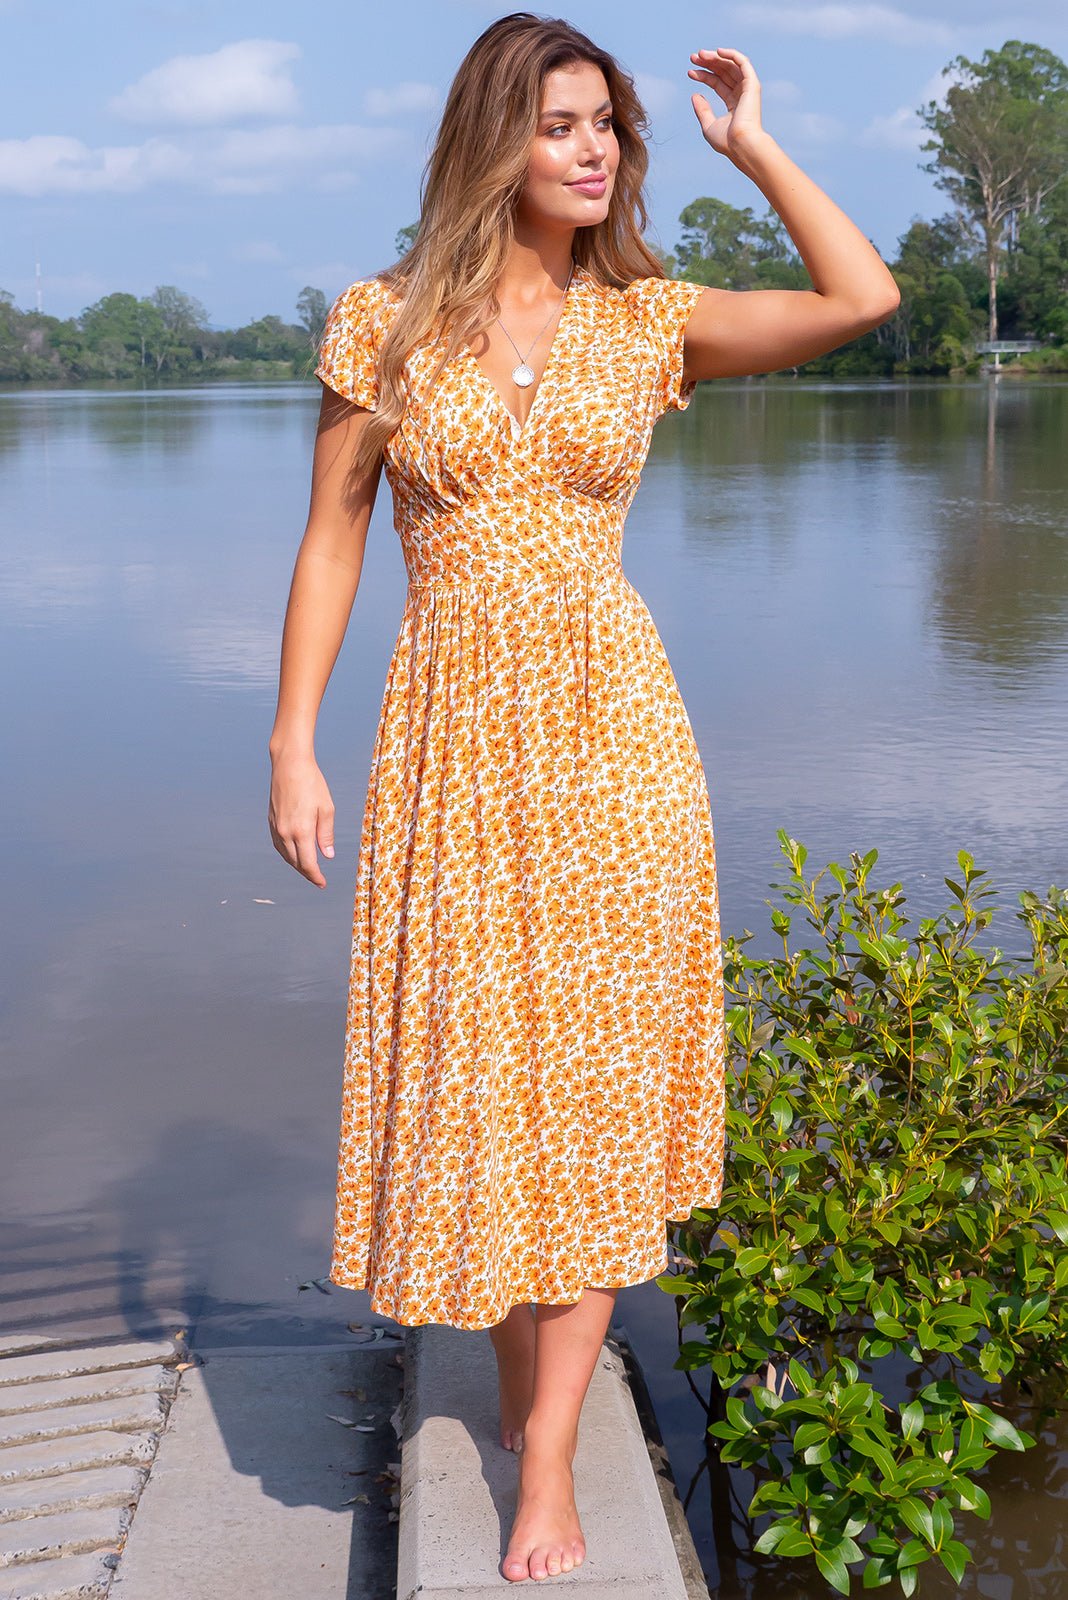 Lizzie Tangerine Dream Dress, vintage inspired frock is decorated in a soft white base with a fresh and fun orange daisy print of woven 100% rayon features lightweight/non-stretch fabric, waist features elastic shirring at back and side pockets.